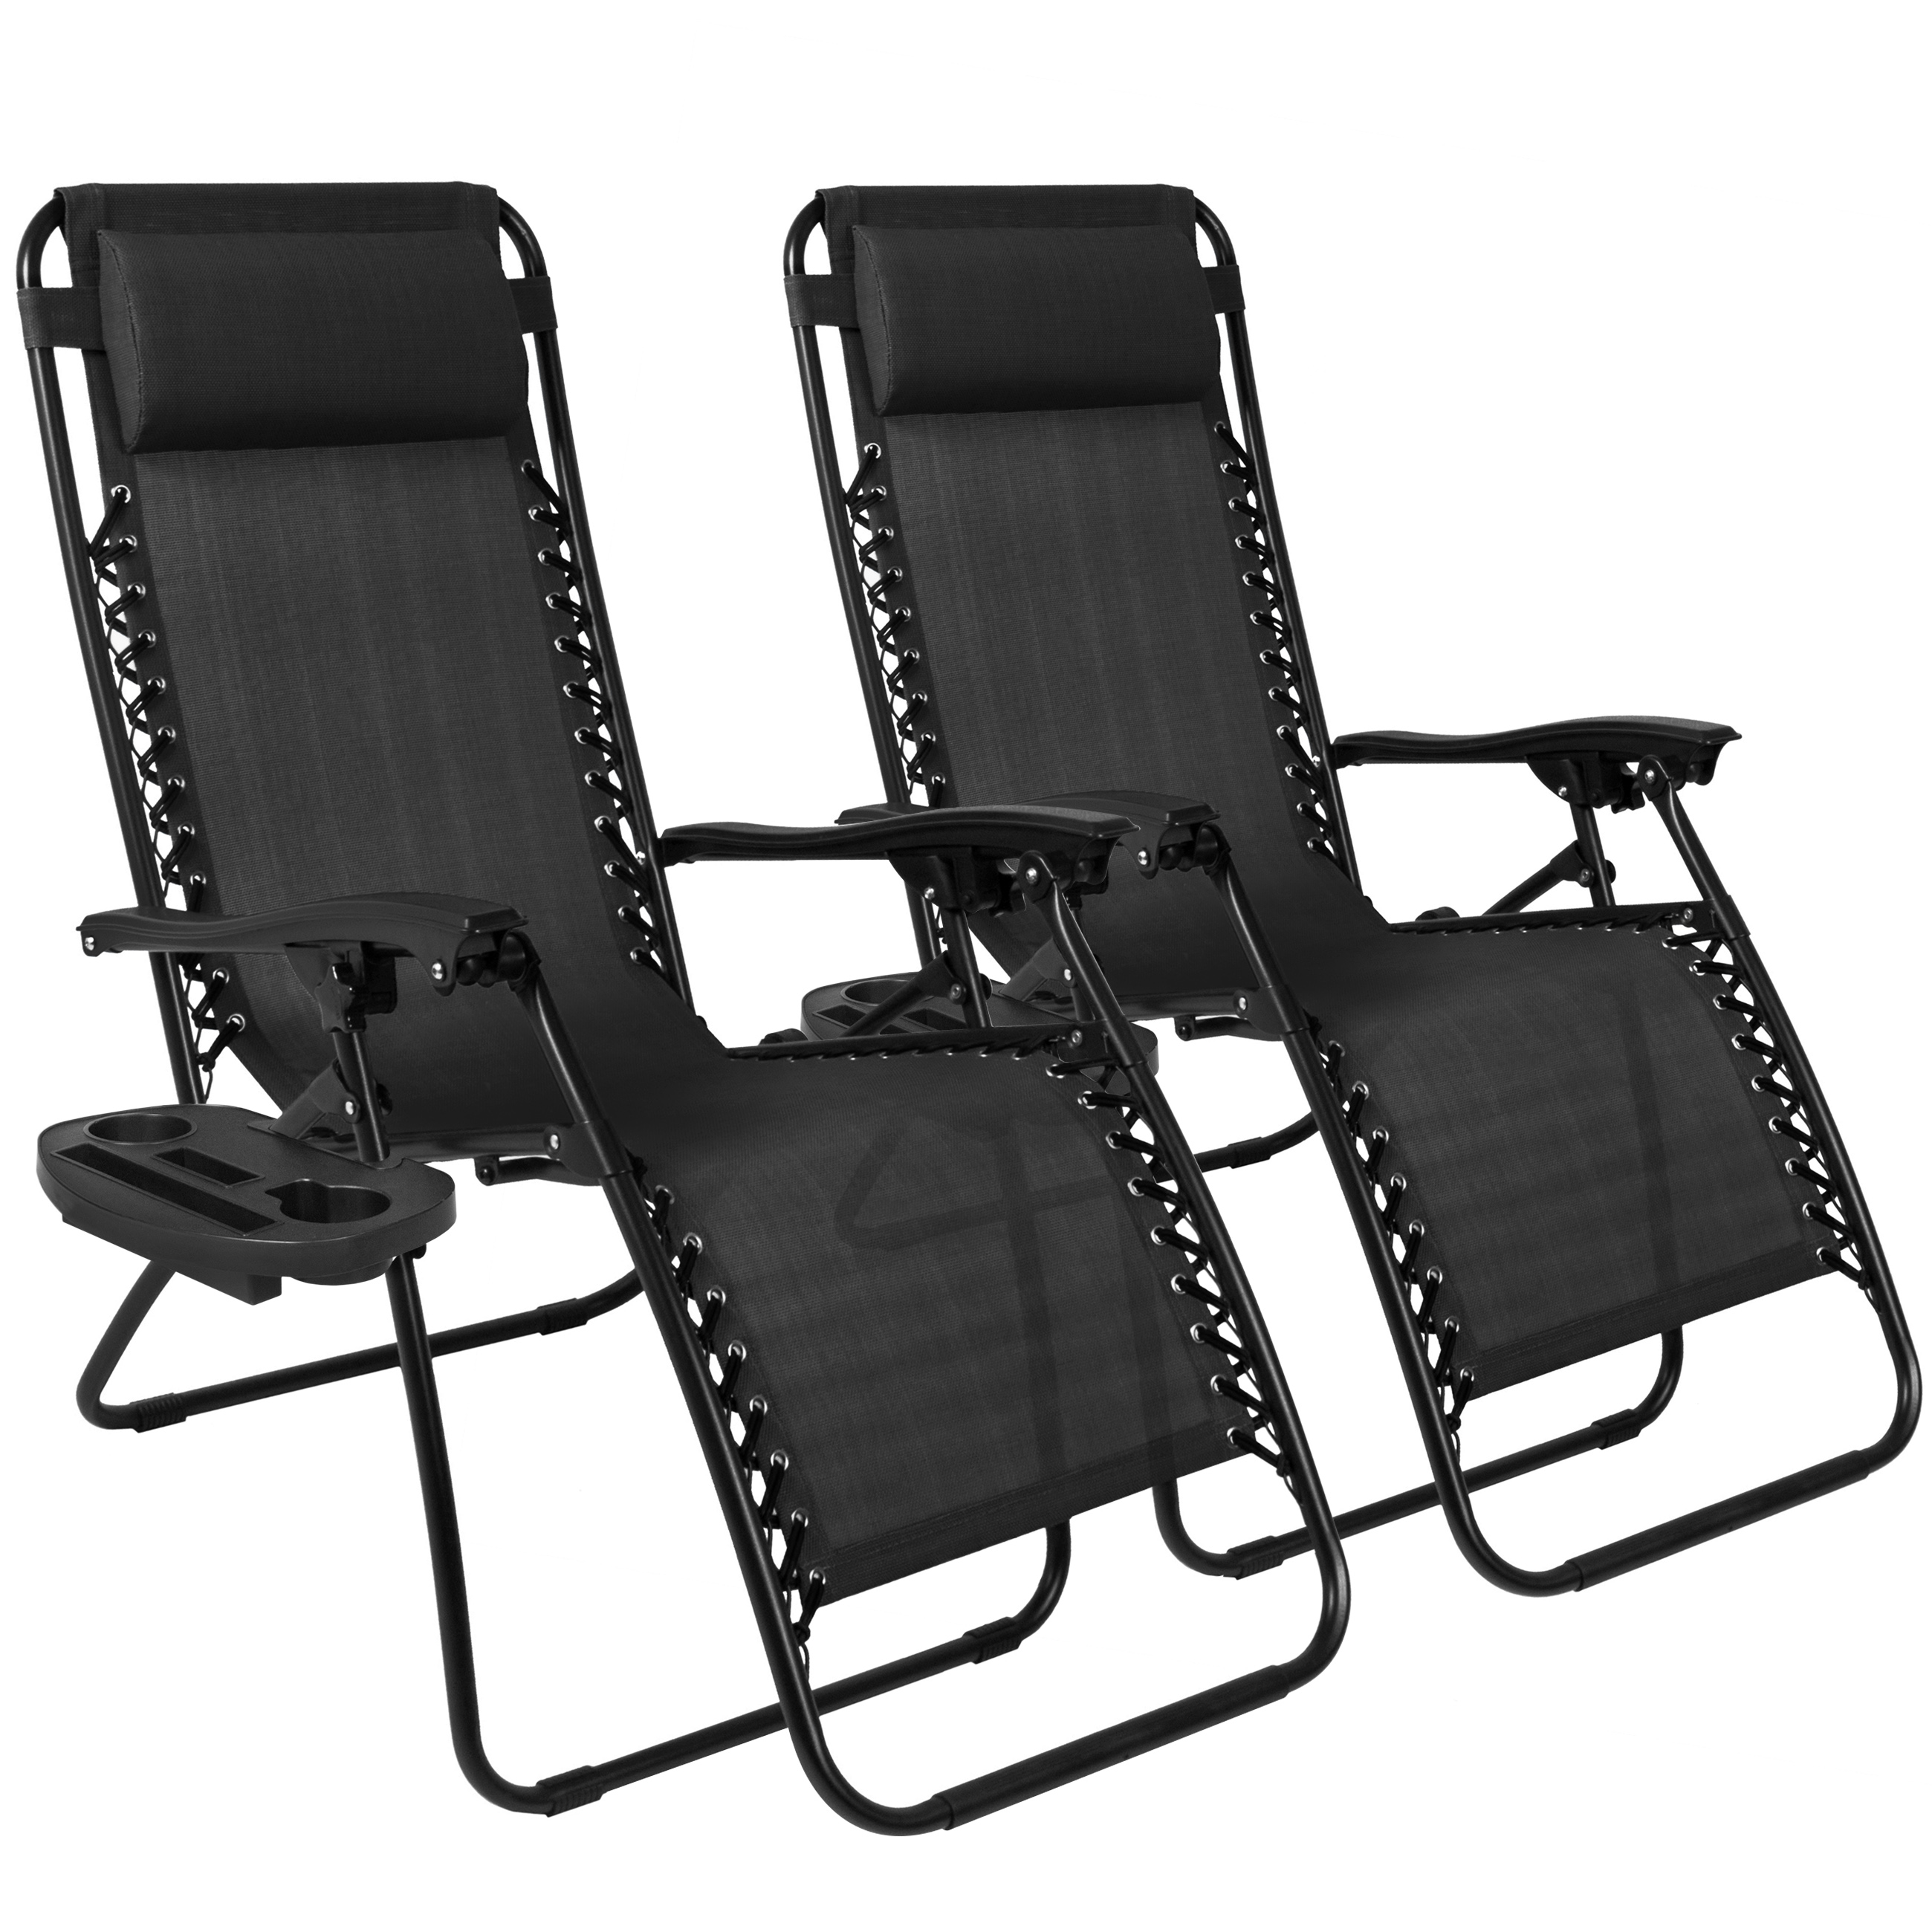 Zero Gravity Chairs Case Of (2) Black Lounge Patio Chairs Utility Pool Tray  Cup